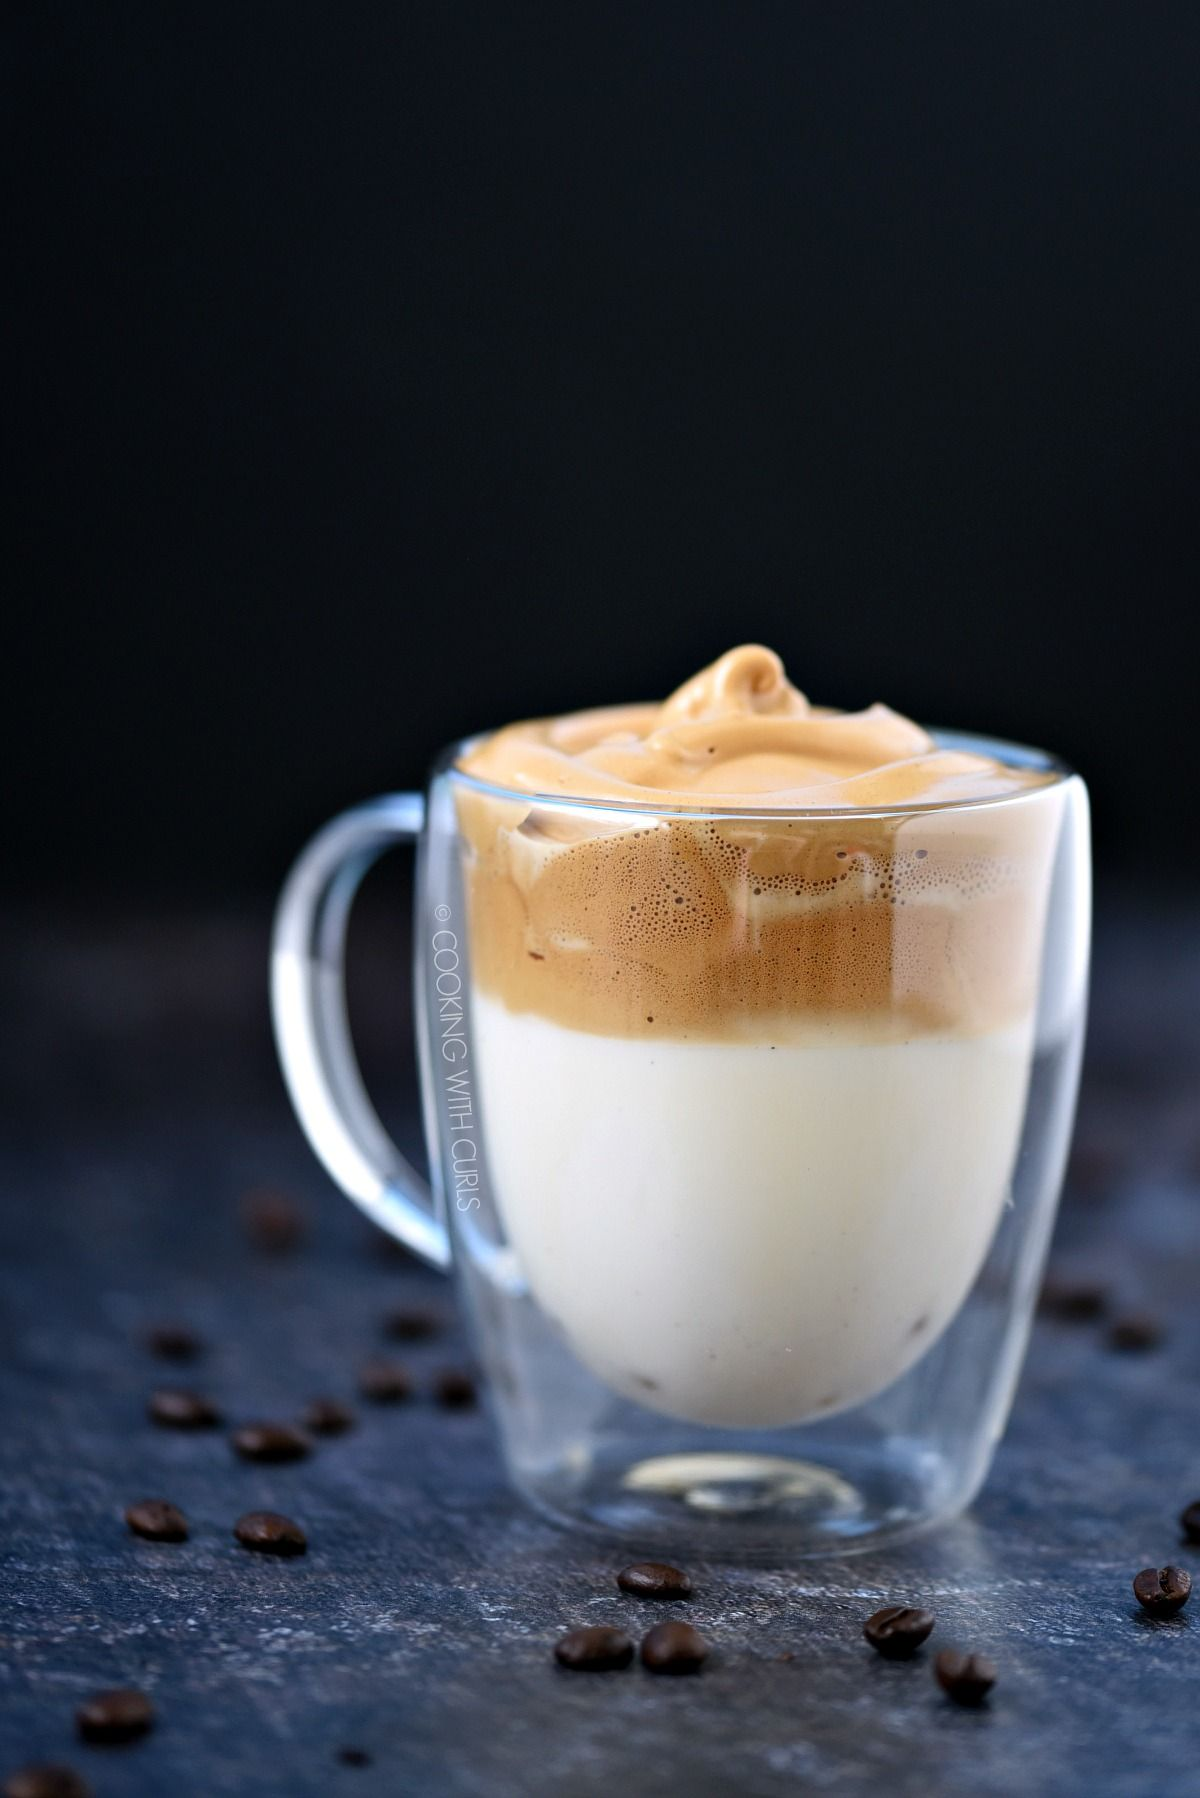 Whipped Dalgona Coffee is taking social media by storm and